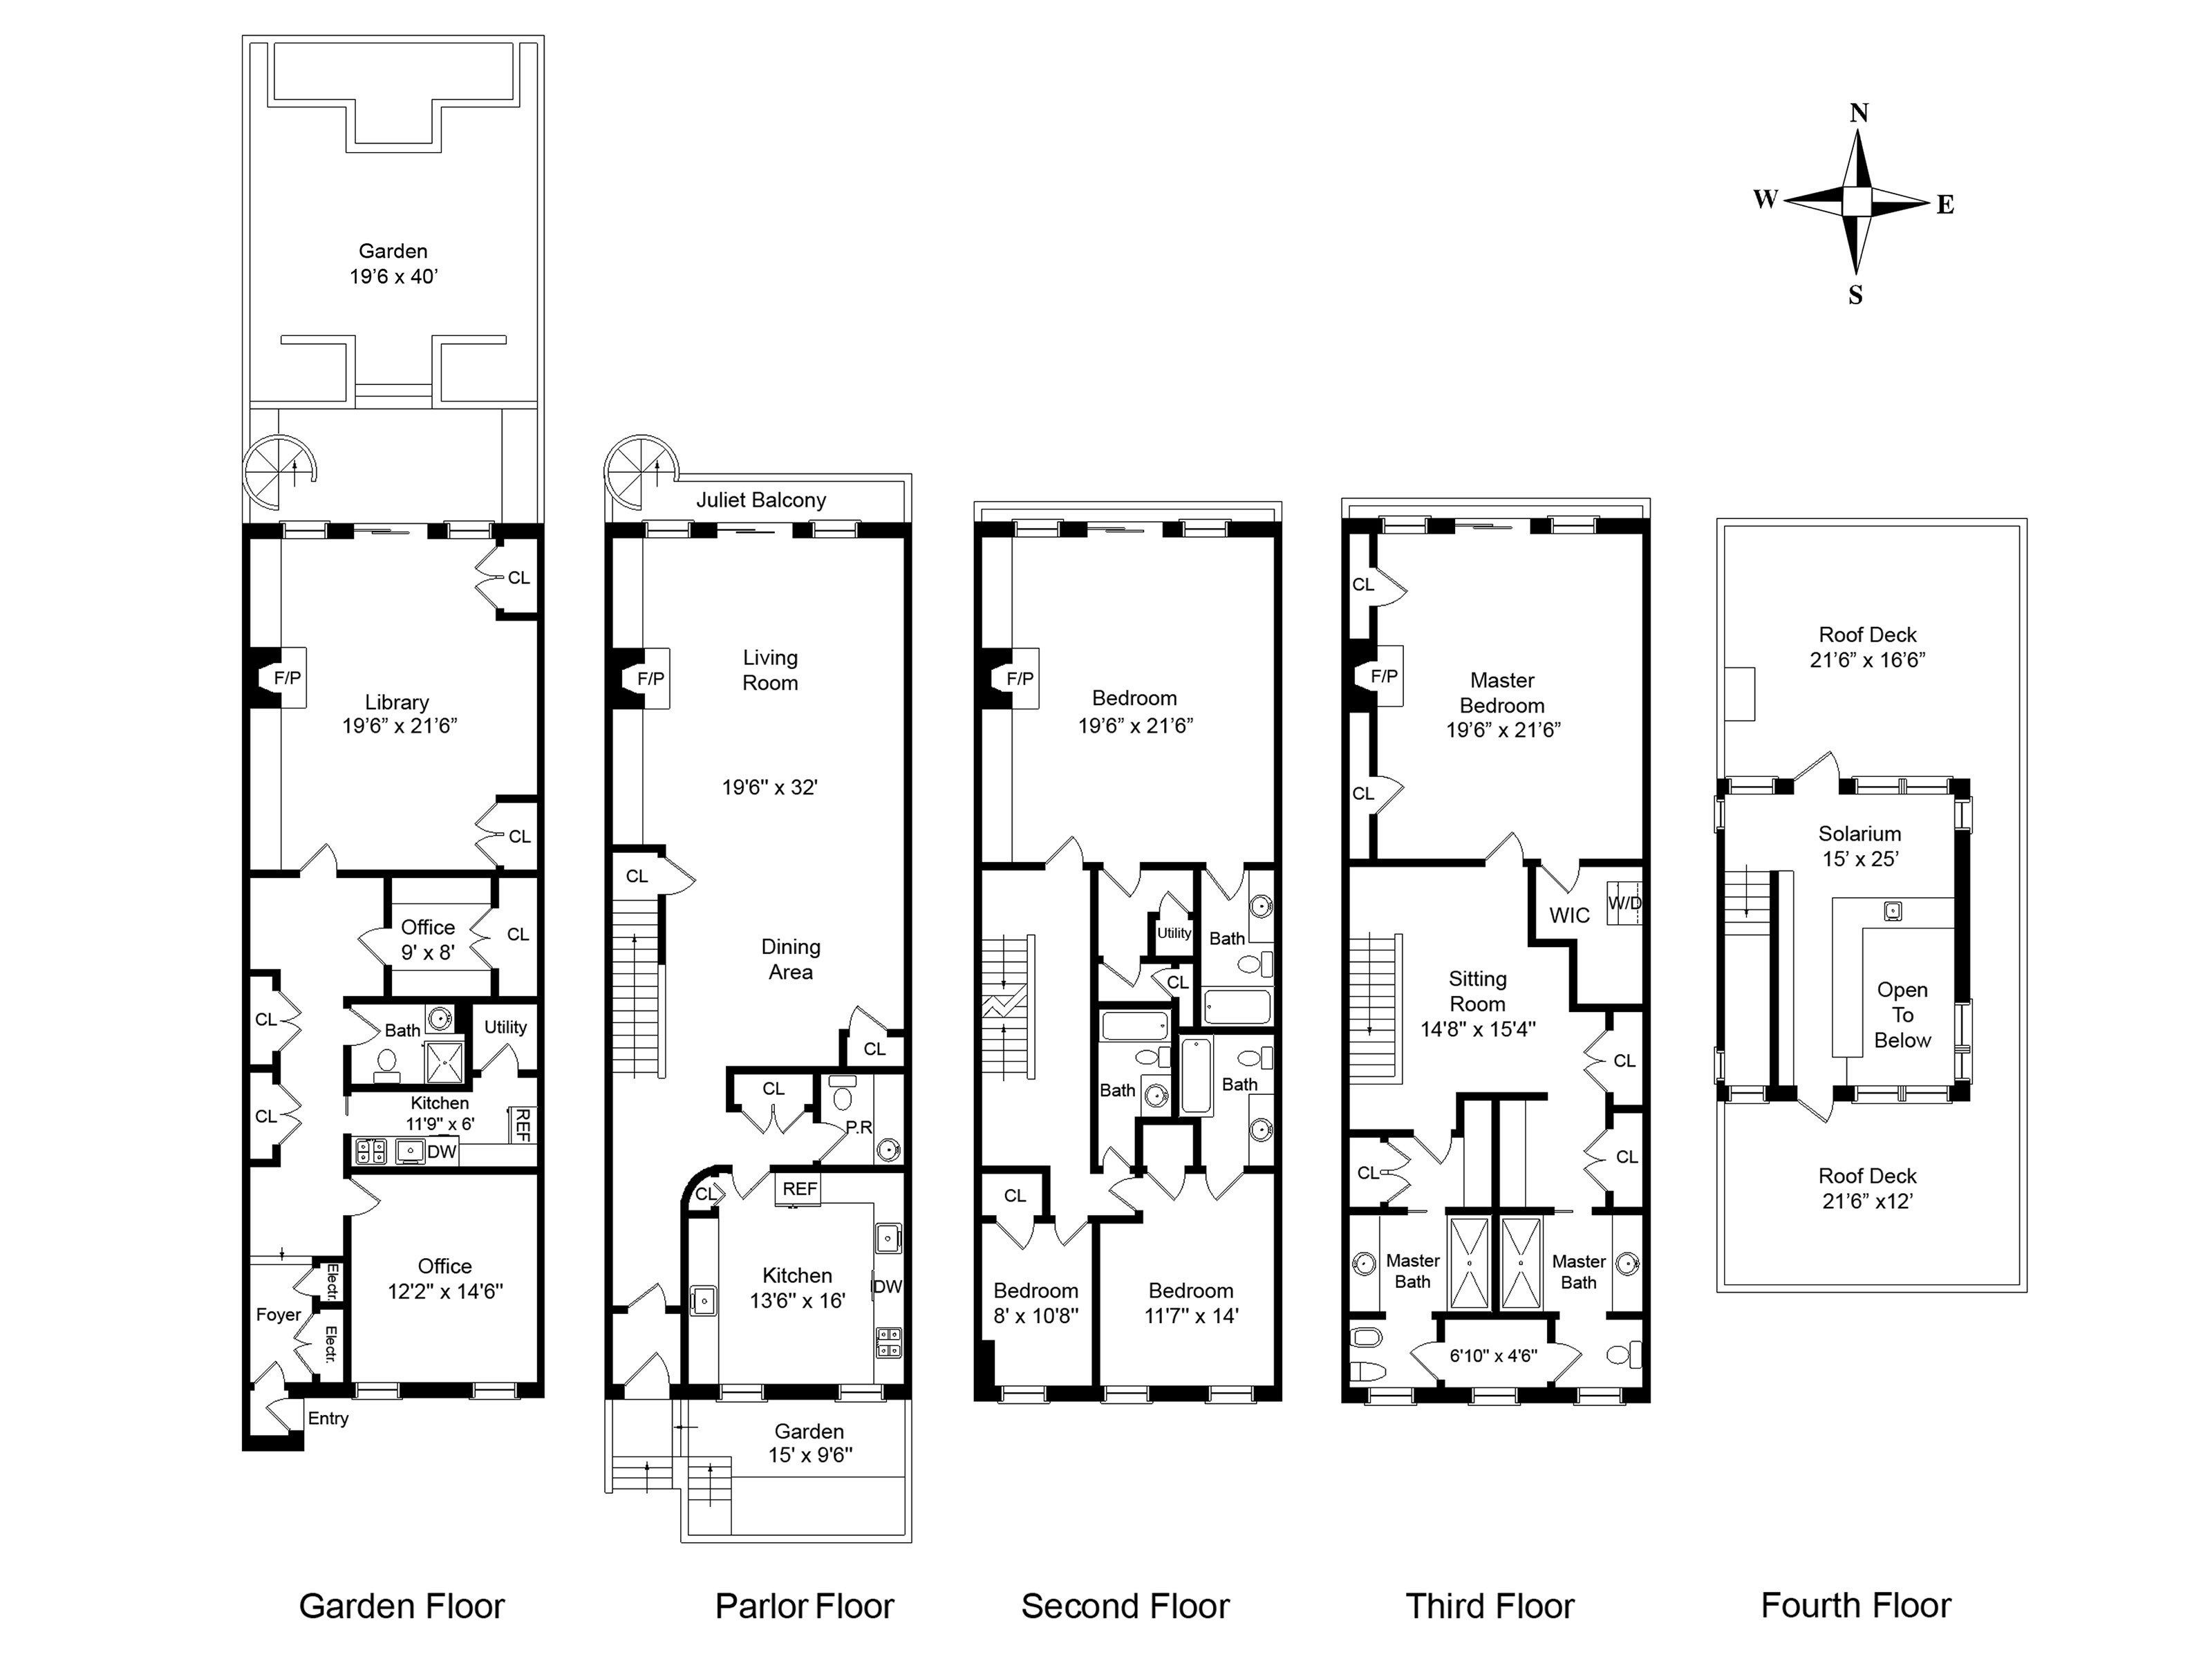 New york townhouse floor plans house plans pinterest for 4 bedroom townhouse floor plans